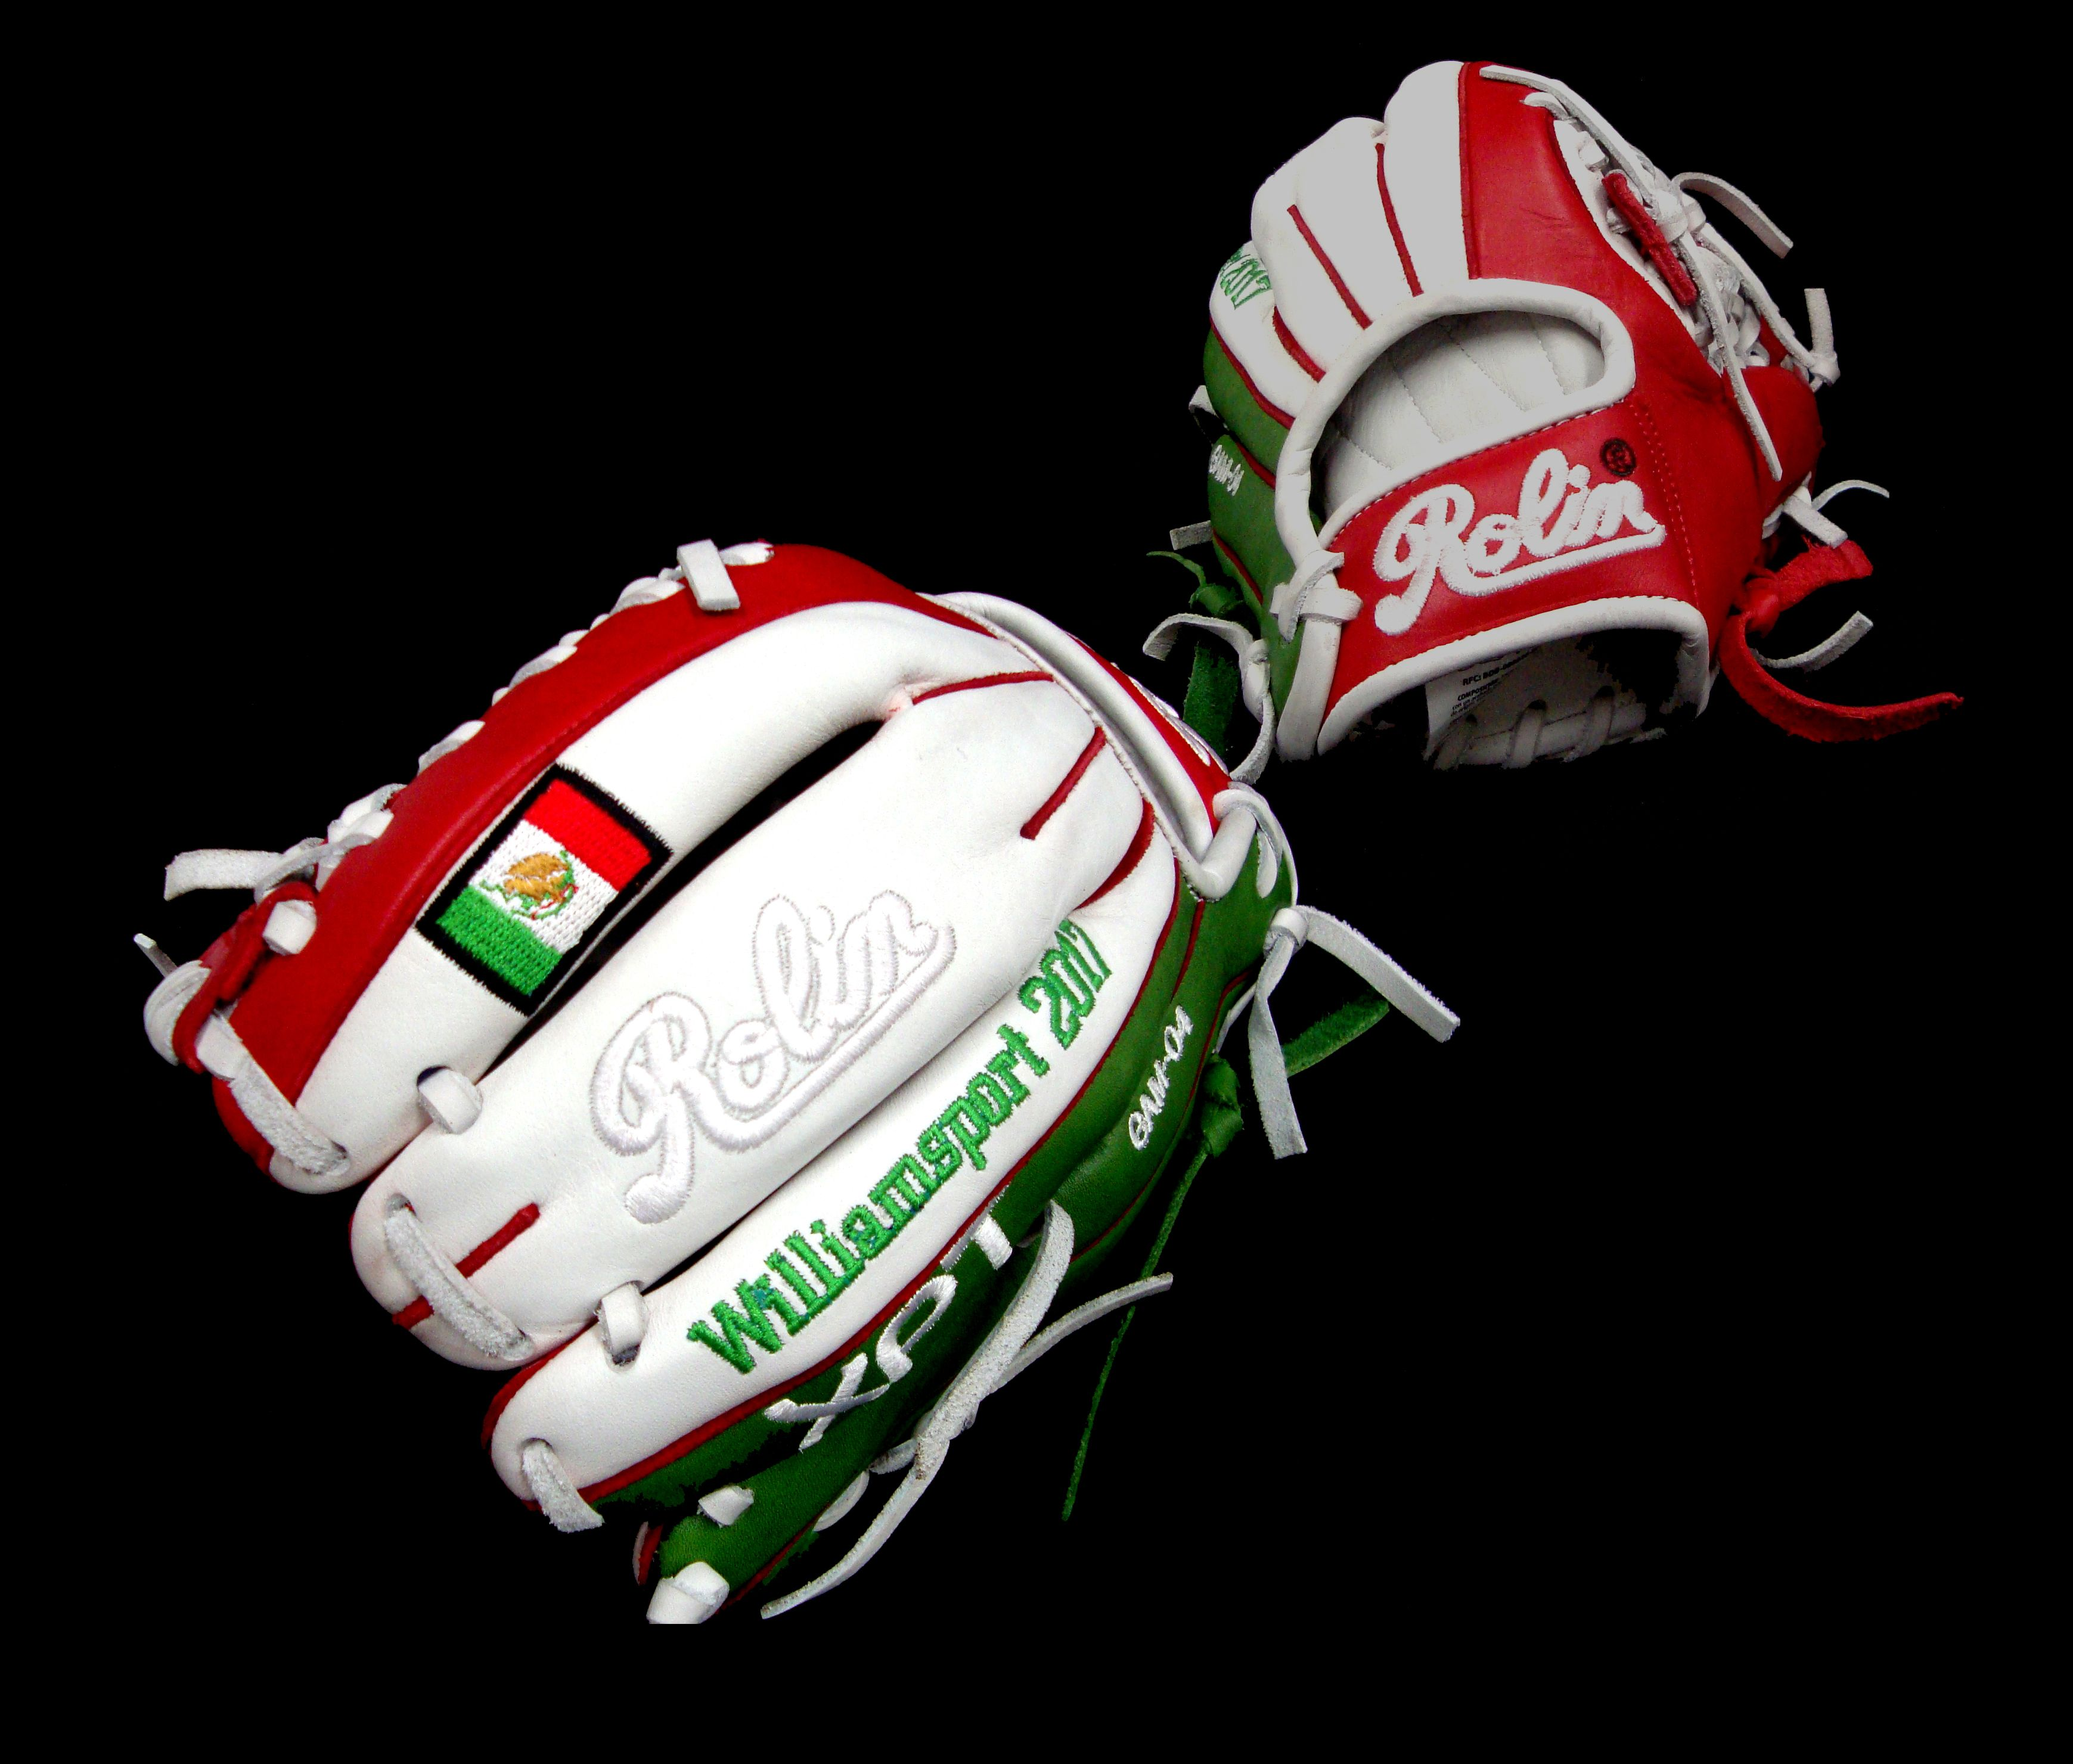 Limited Edition Team Mexico Little League Williamsport Create Your Own Cuztomized Glove At Our Official Web Page Baseball Gear Baseball Glove Softball Gloves